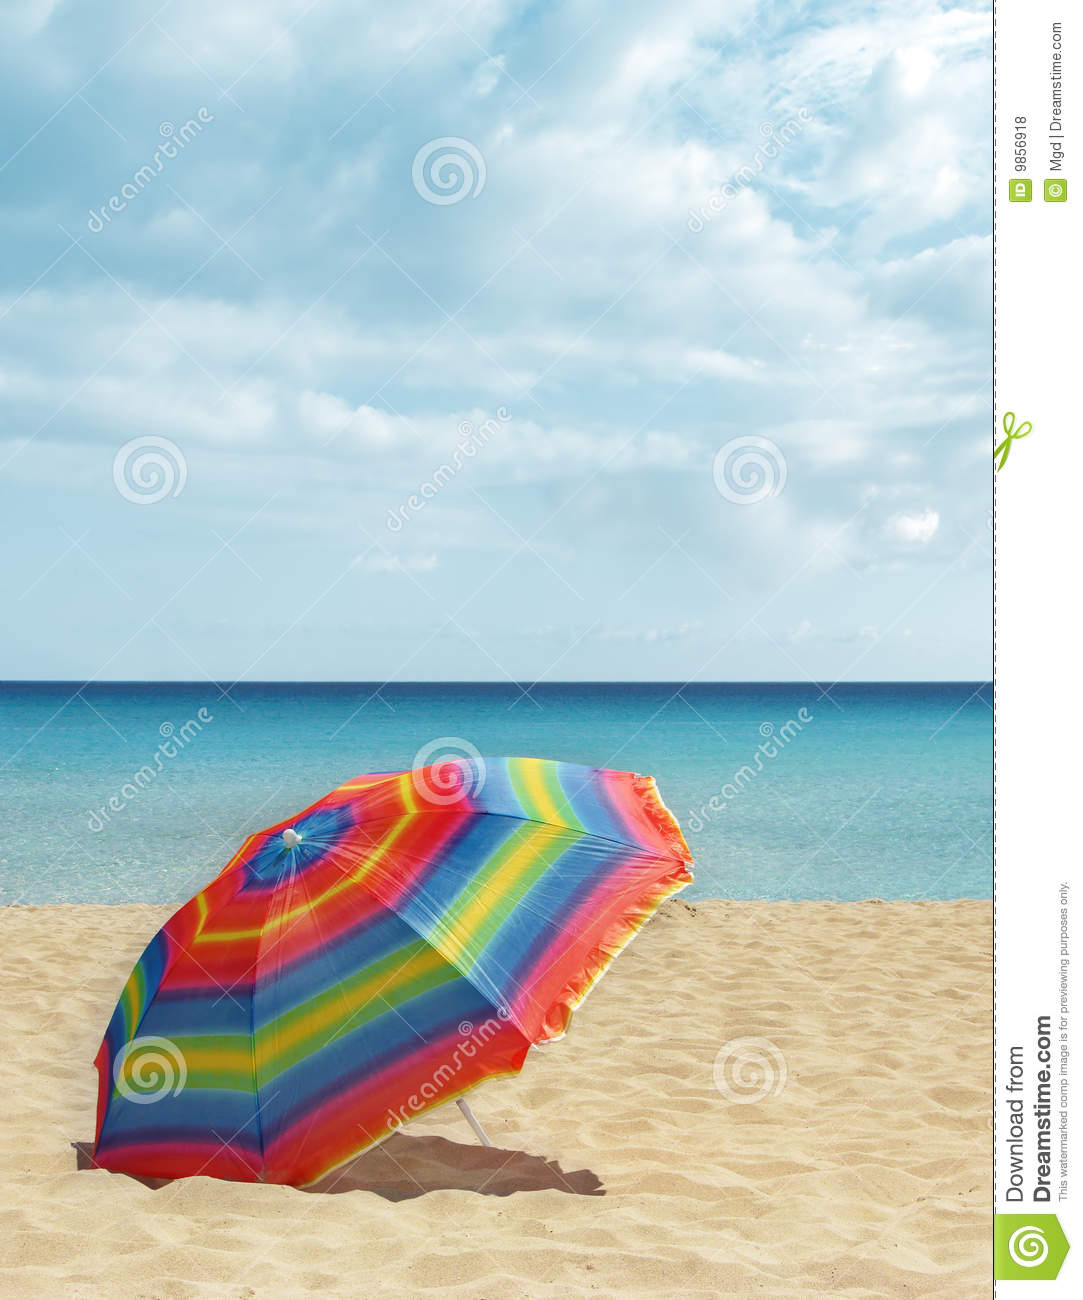 Beach Colorful Parasol Umbrella Royalty Free Stock s Image